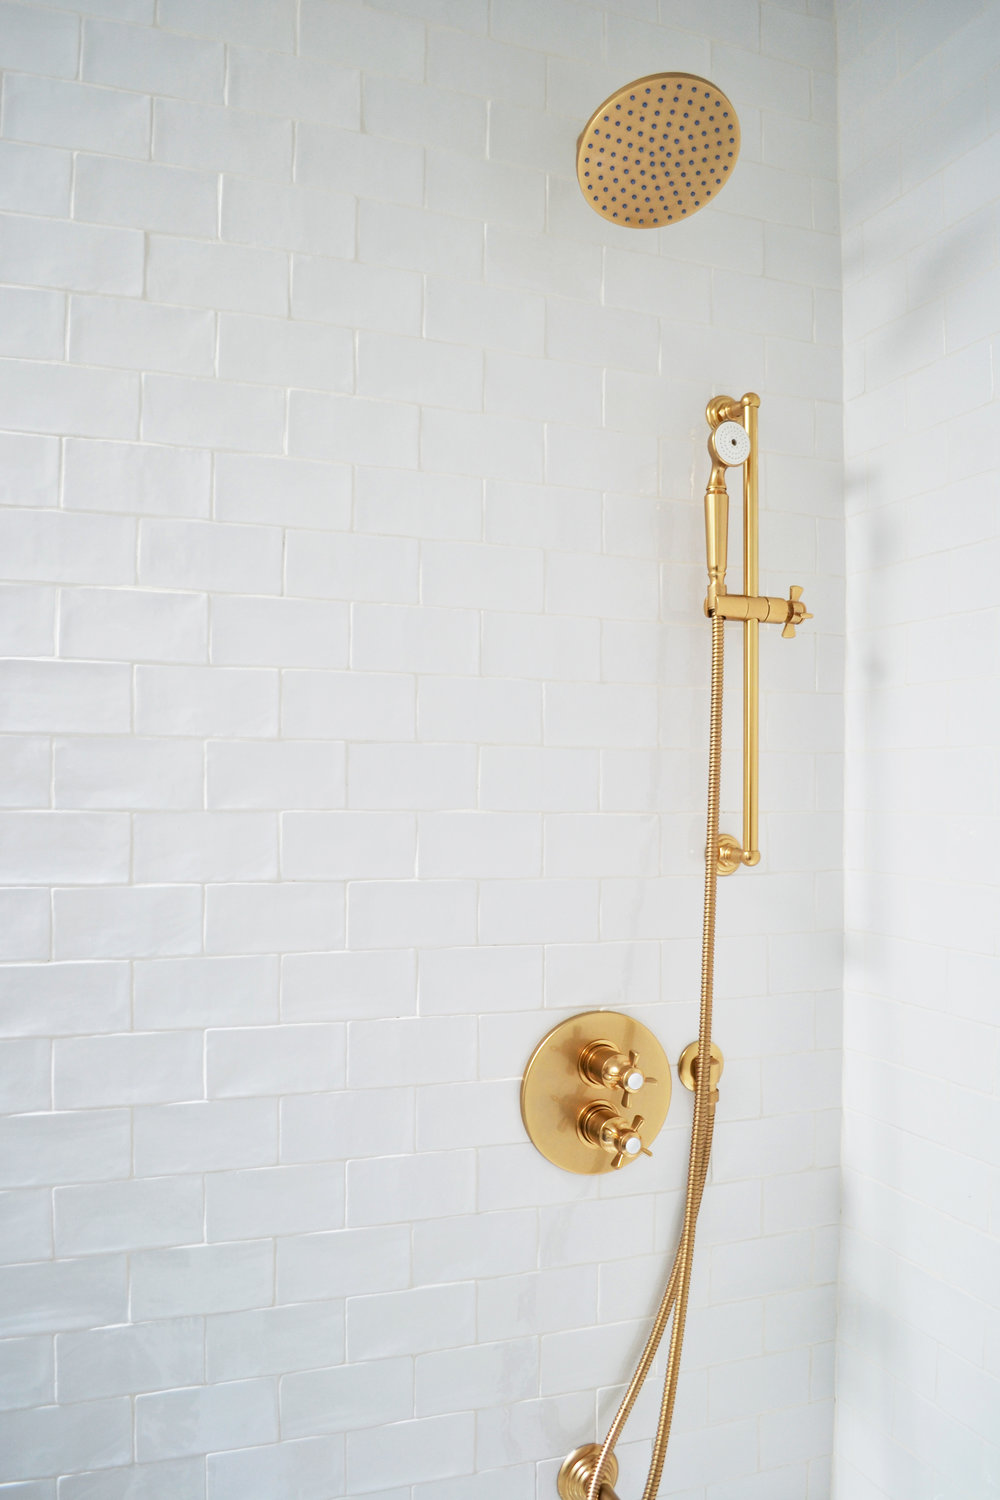 brass bath hardware detail.jpg